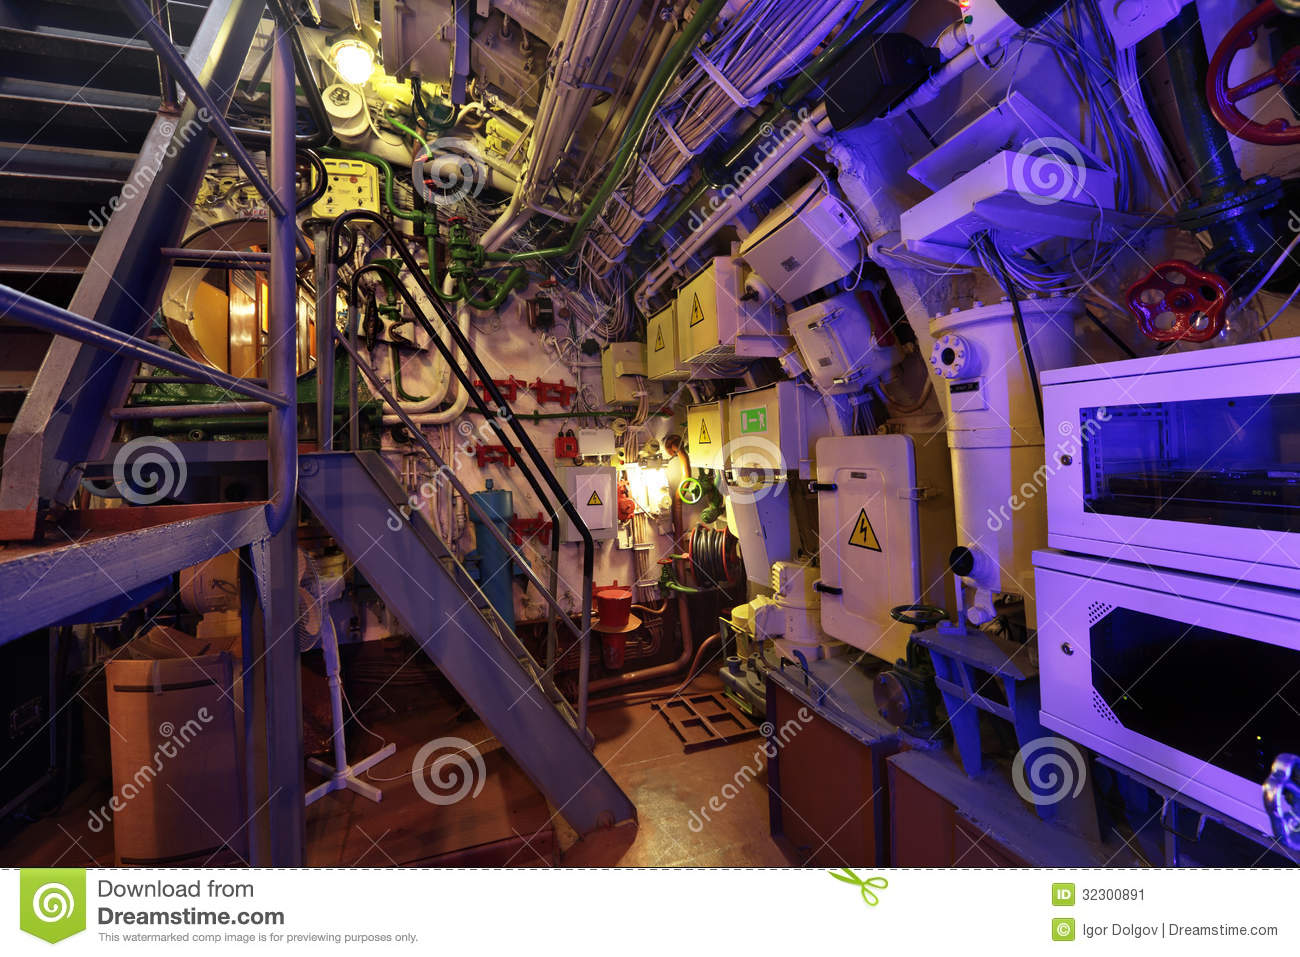 The submarine interior stock image. Image of gate, complexity - 32300891